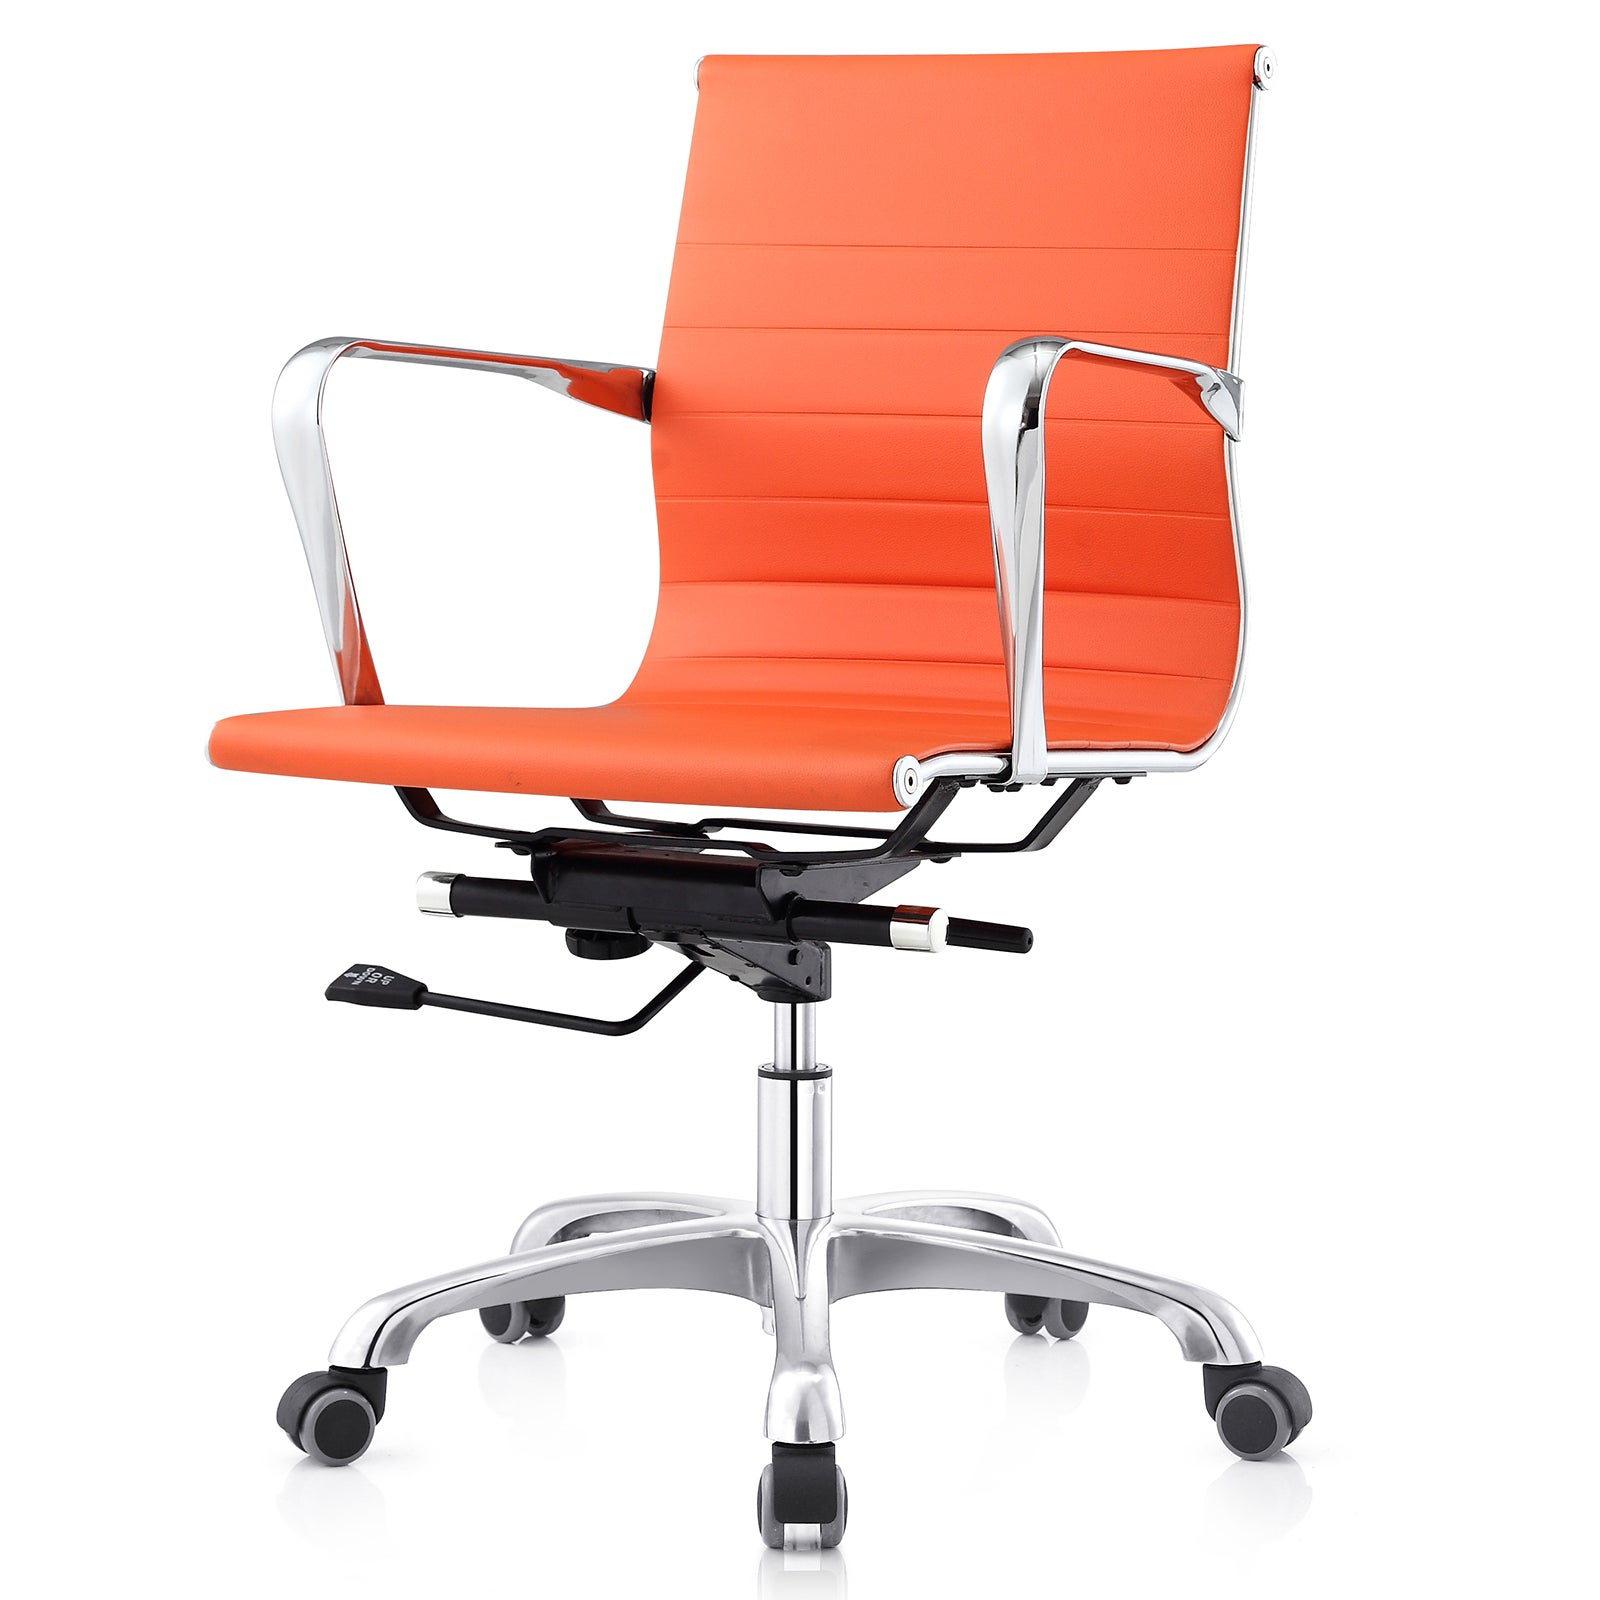 mc505 orange leatherette ribbed mid back executive office chair